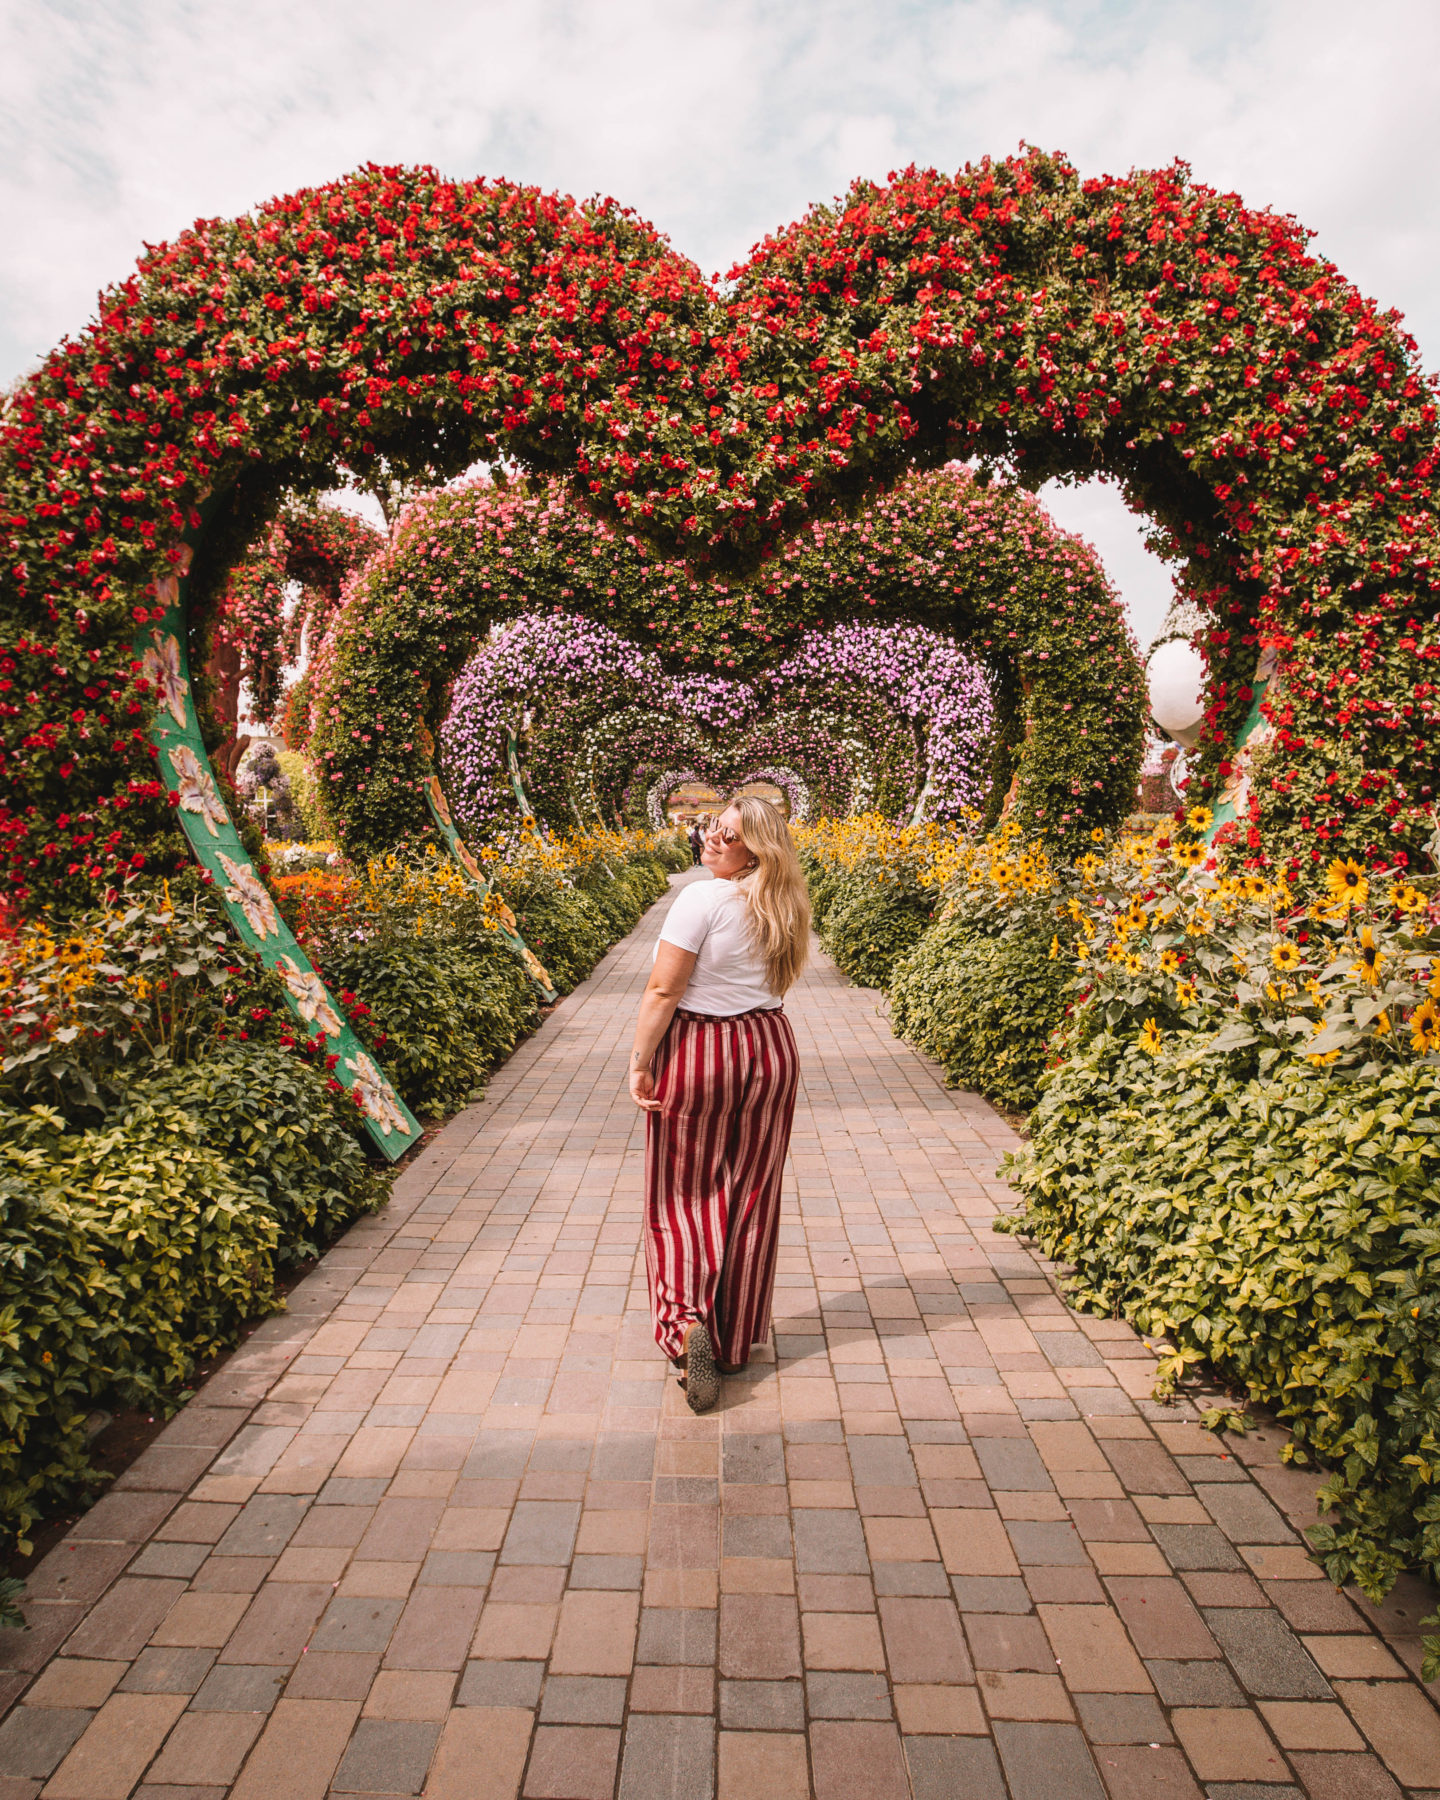 The Instagram famous heart walkway at the Miracle Garden in Dubai